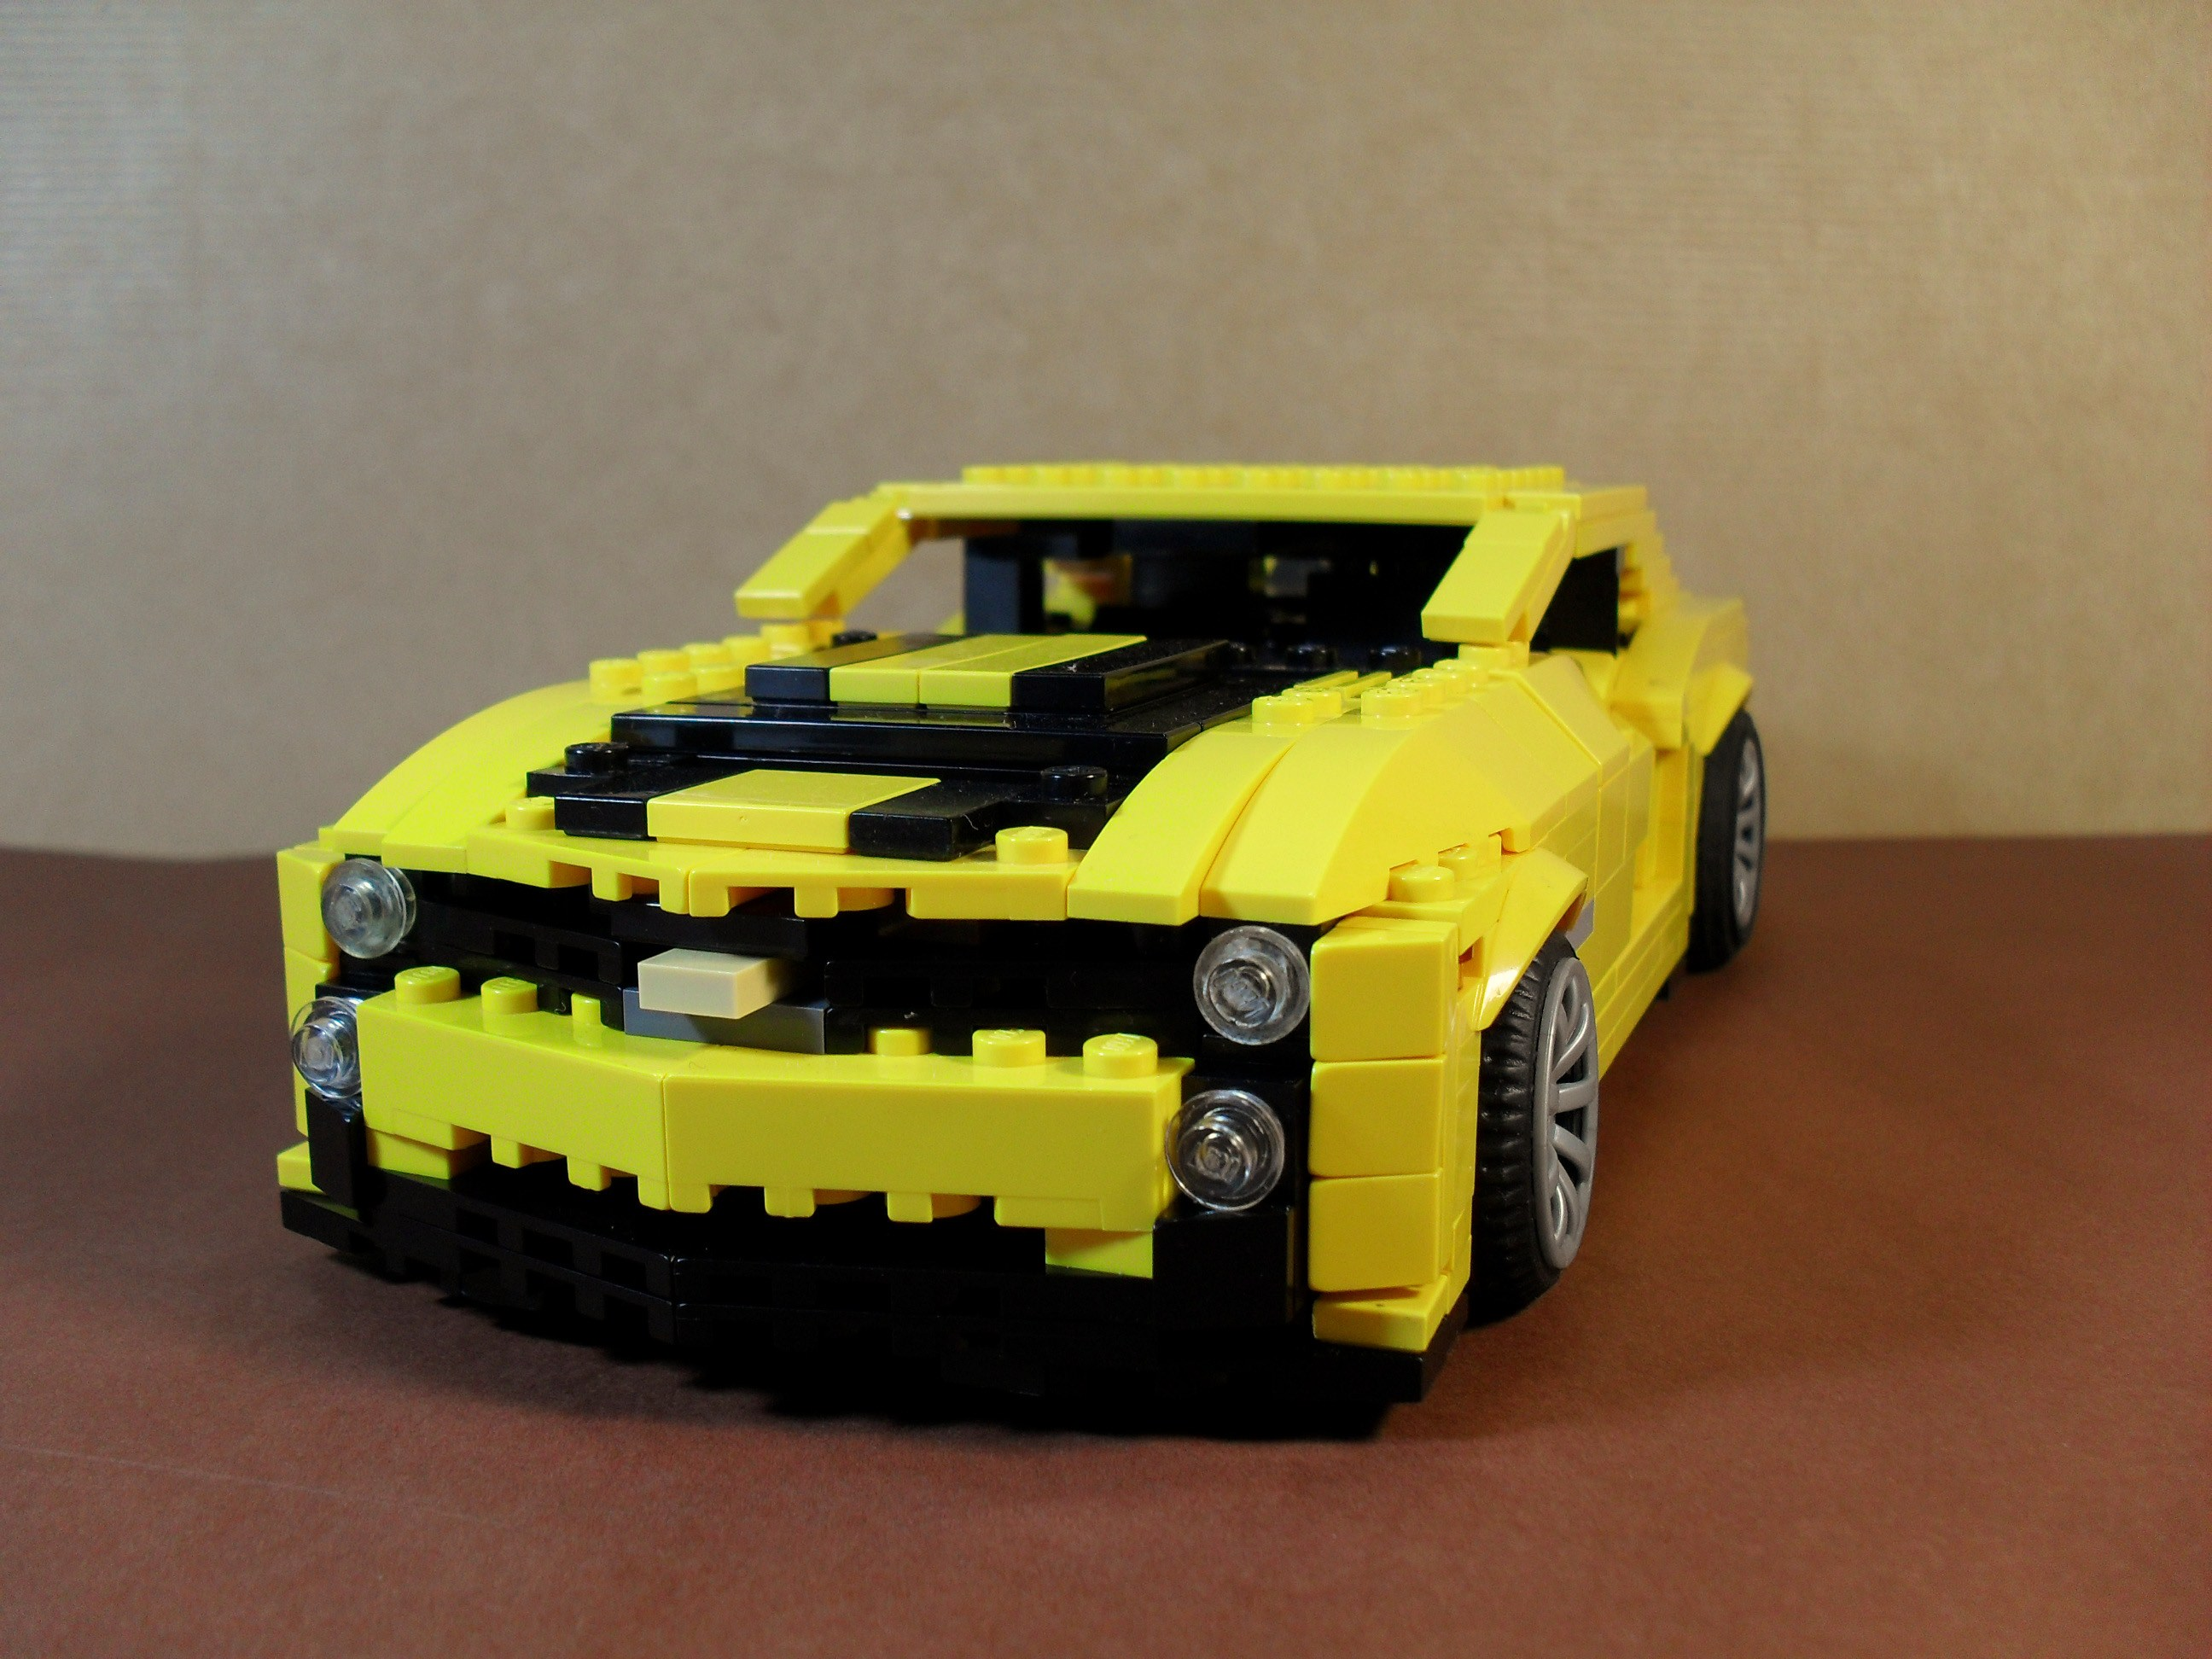 2010_chevrolet_camaro_bumble_bee.jpg